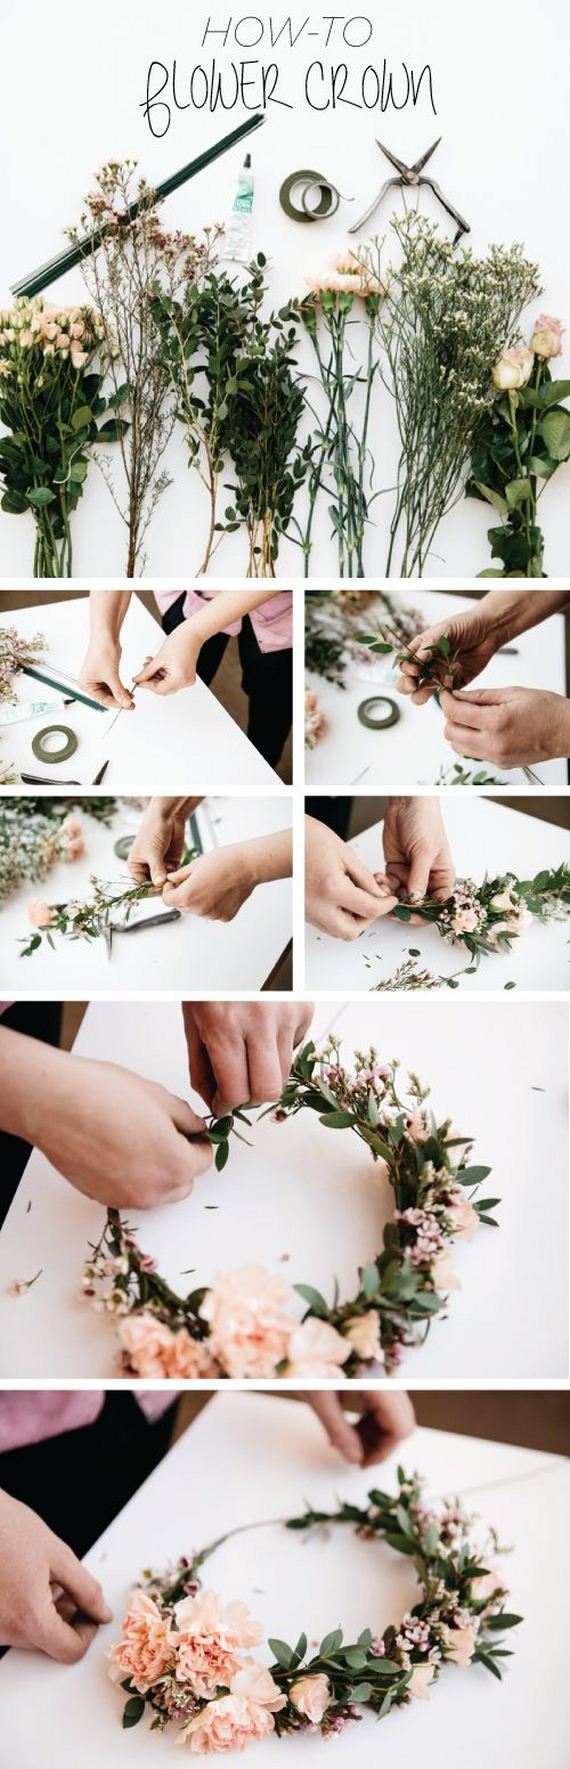 04-how-to-make-a-flower-crown-hairband-diy